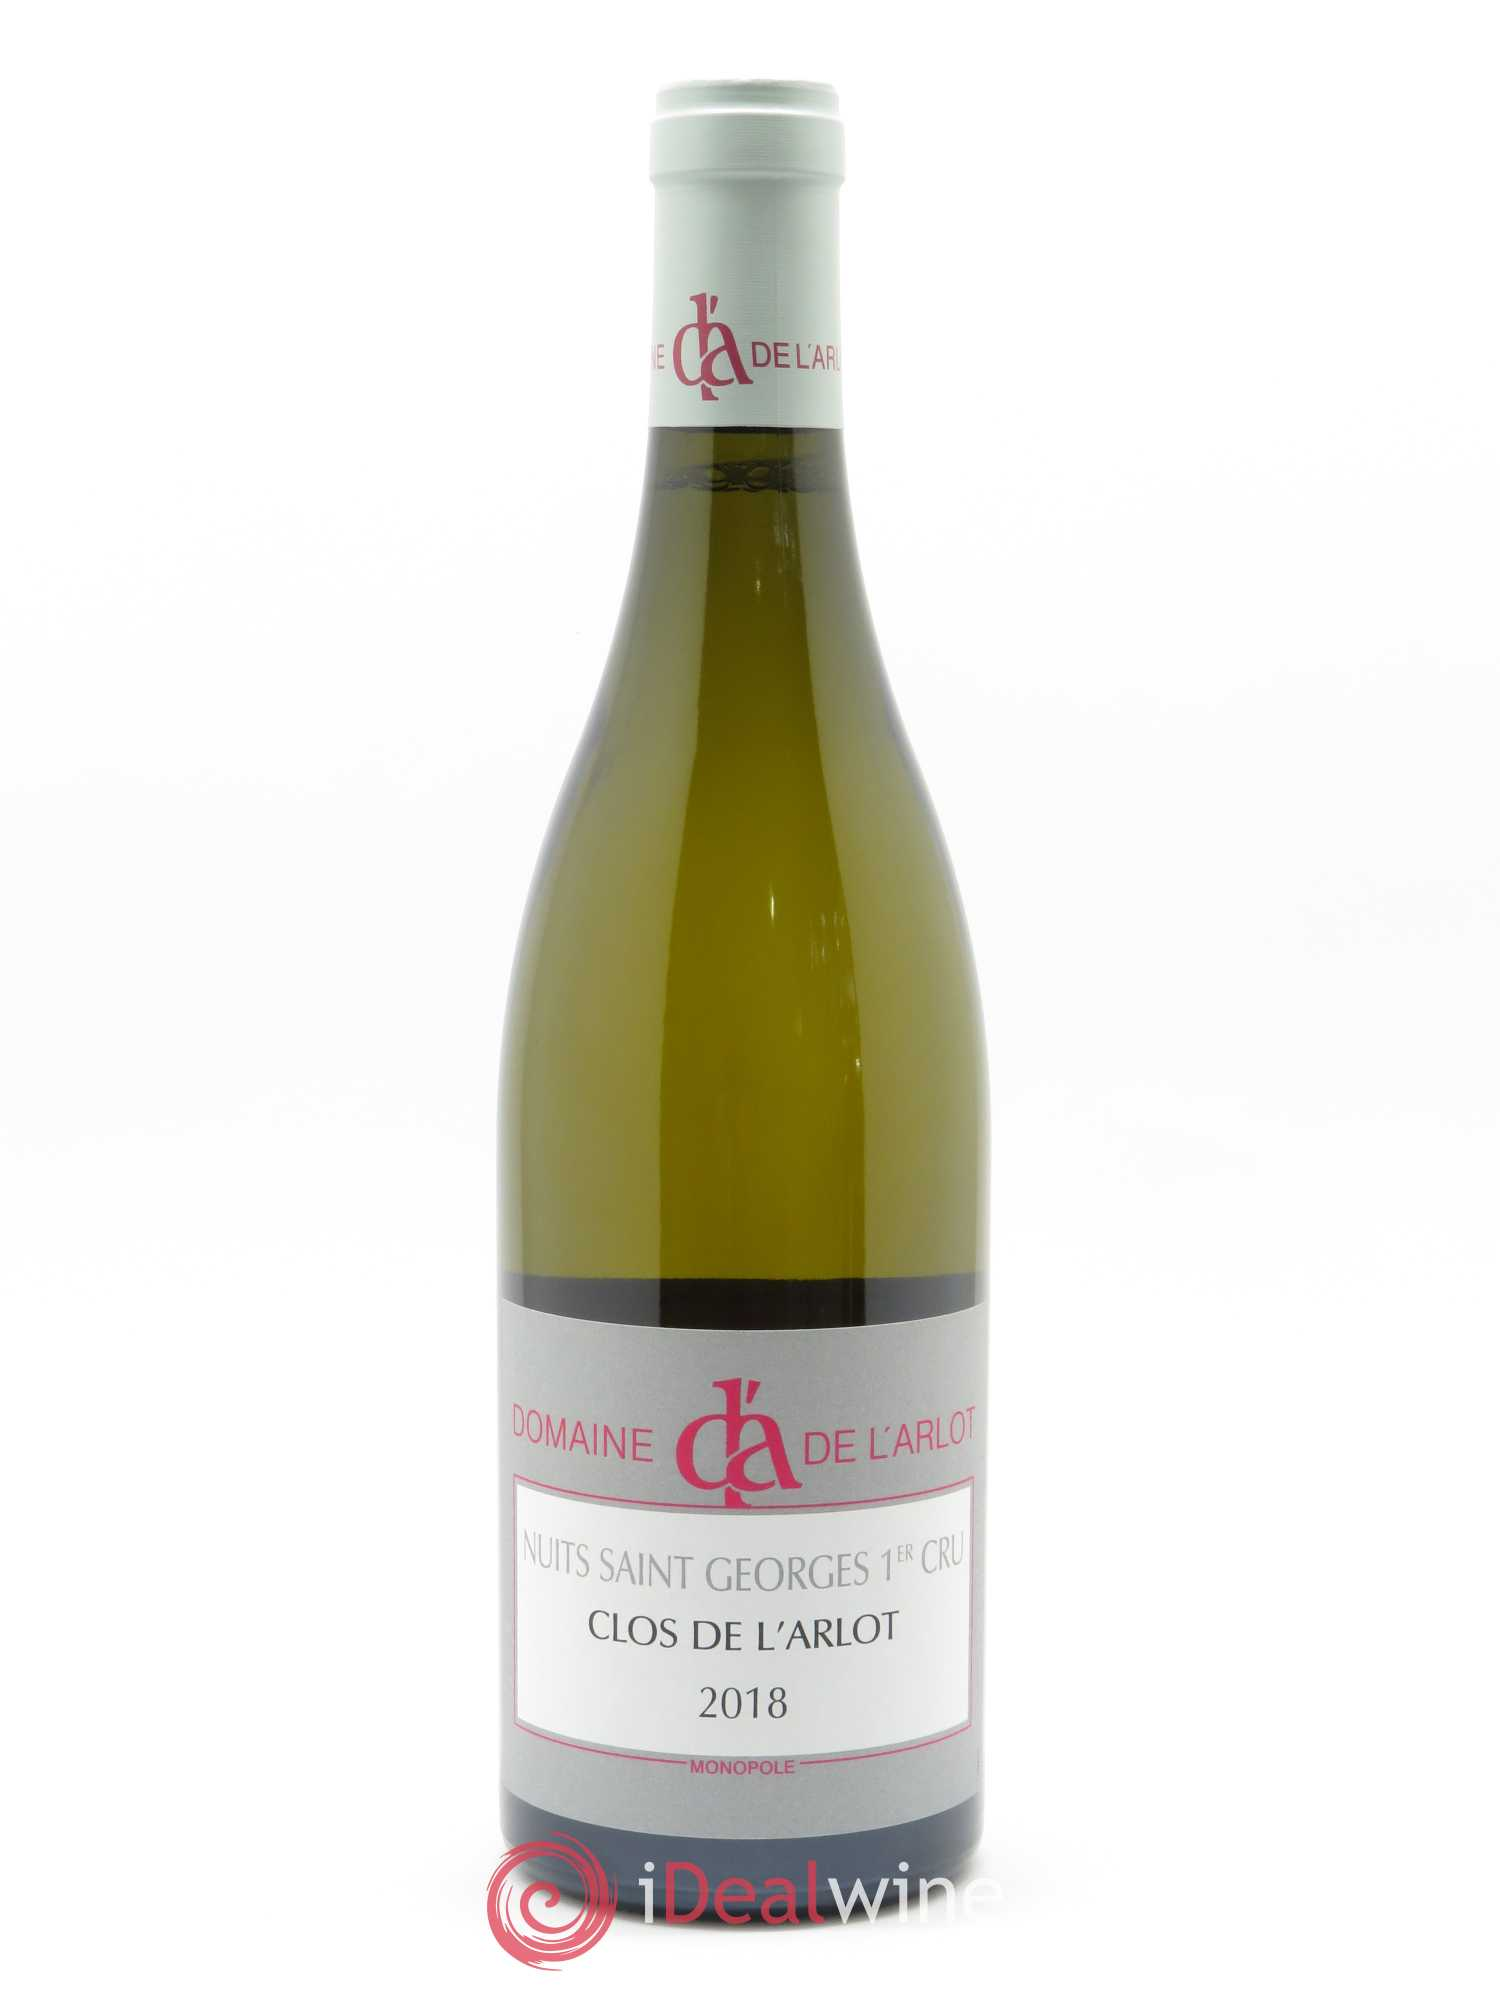 Nuits Saint-Georges 1er Cru Clos de l'Arlot Domaine de l'Arlot  2018 - Lot of 1 Bottle